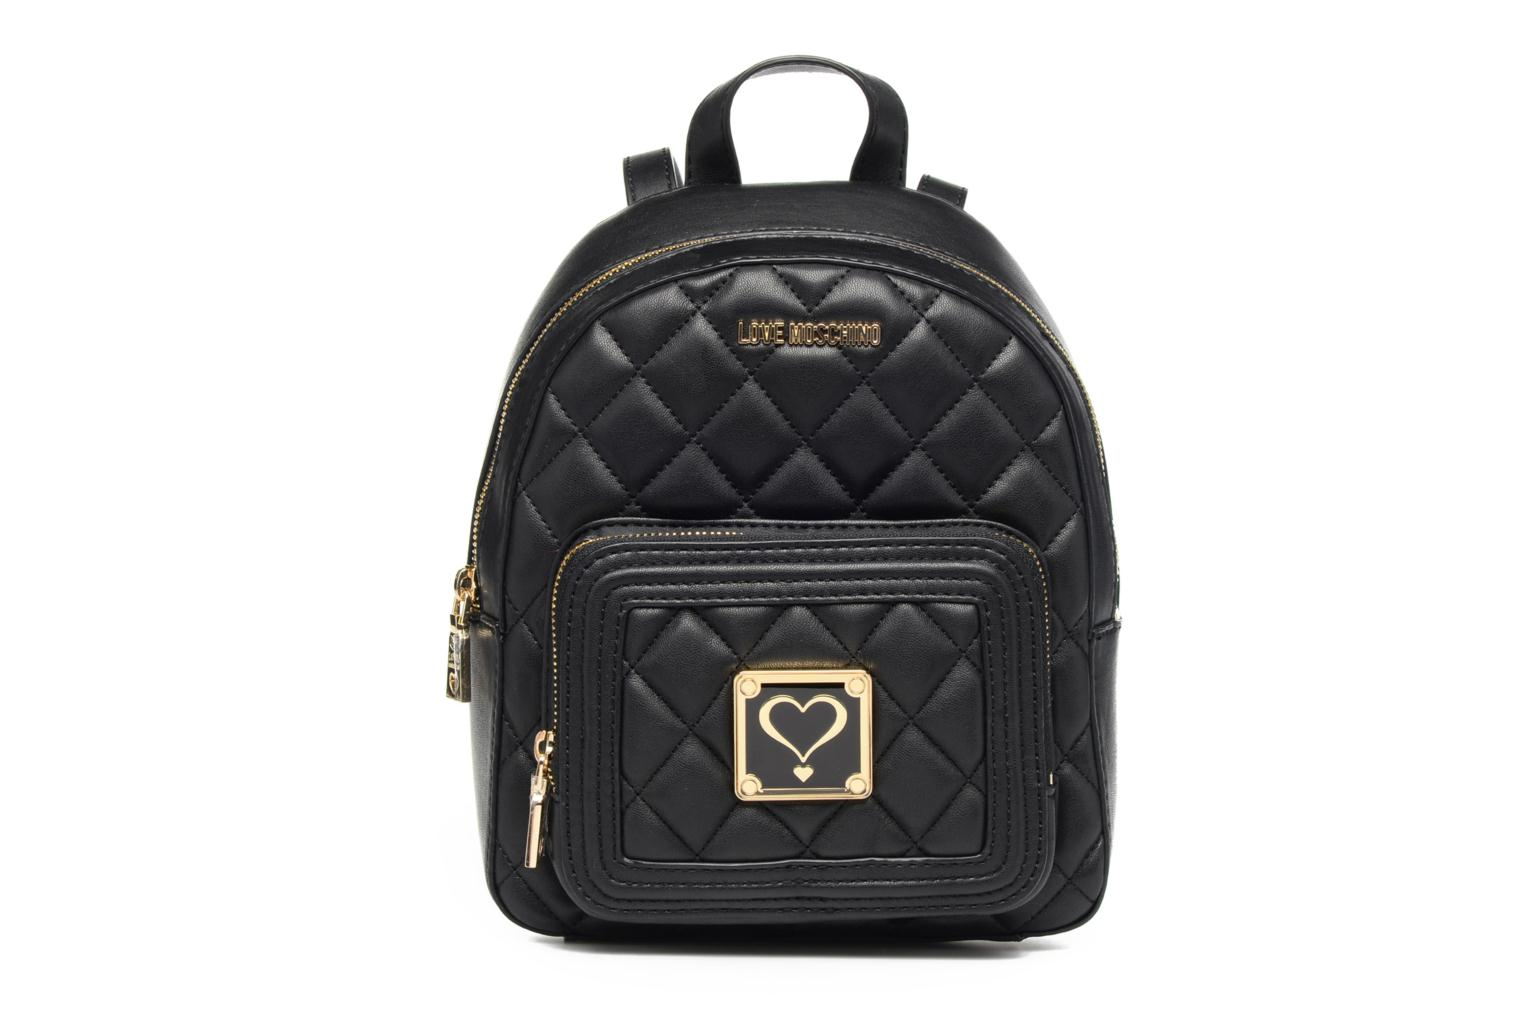 9948eabb43 Love Moschino Super quilted Backpack (Black) - Rucksacks chez ...